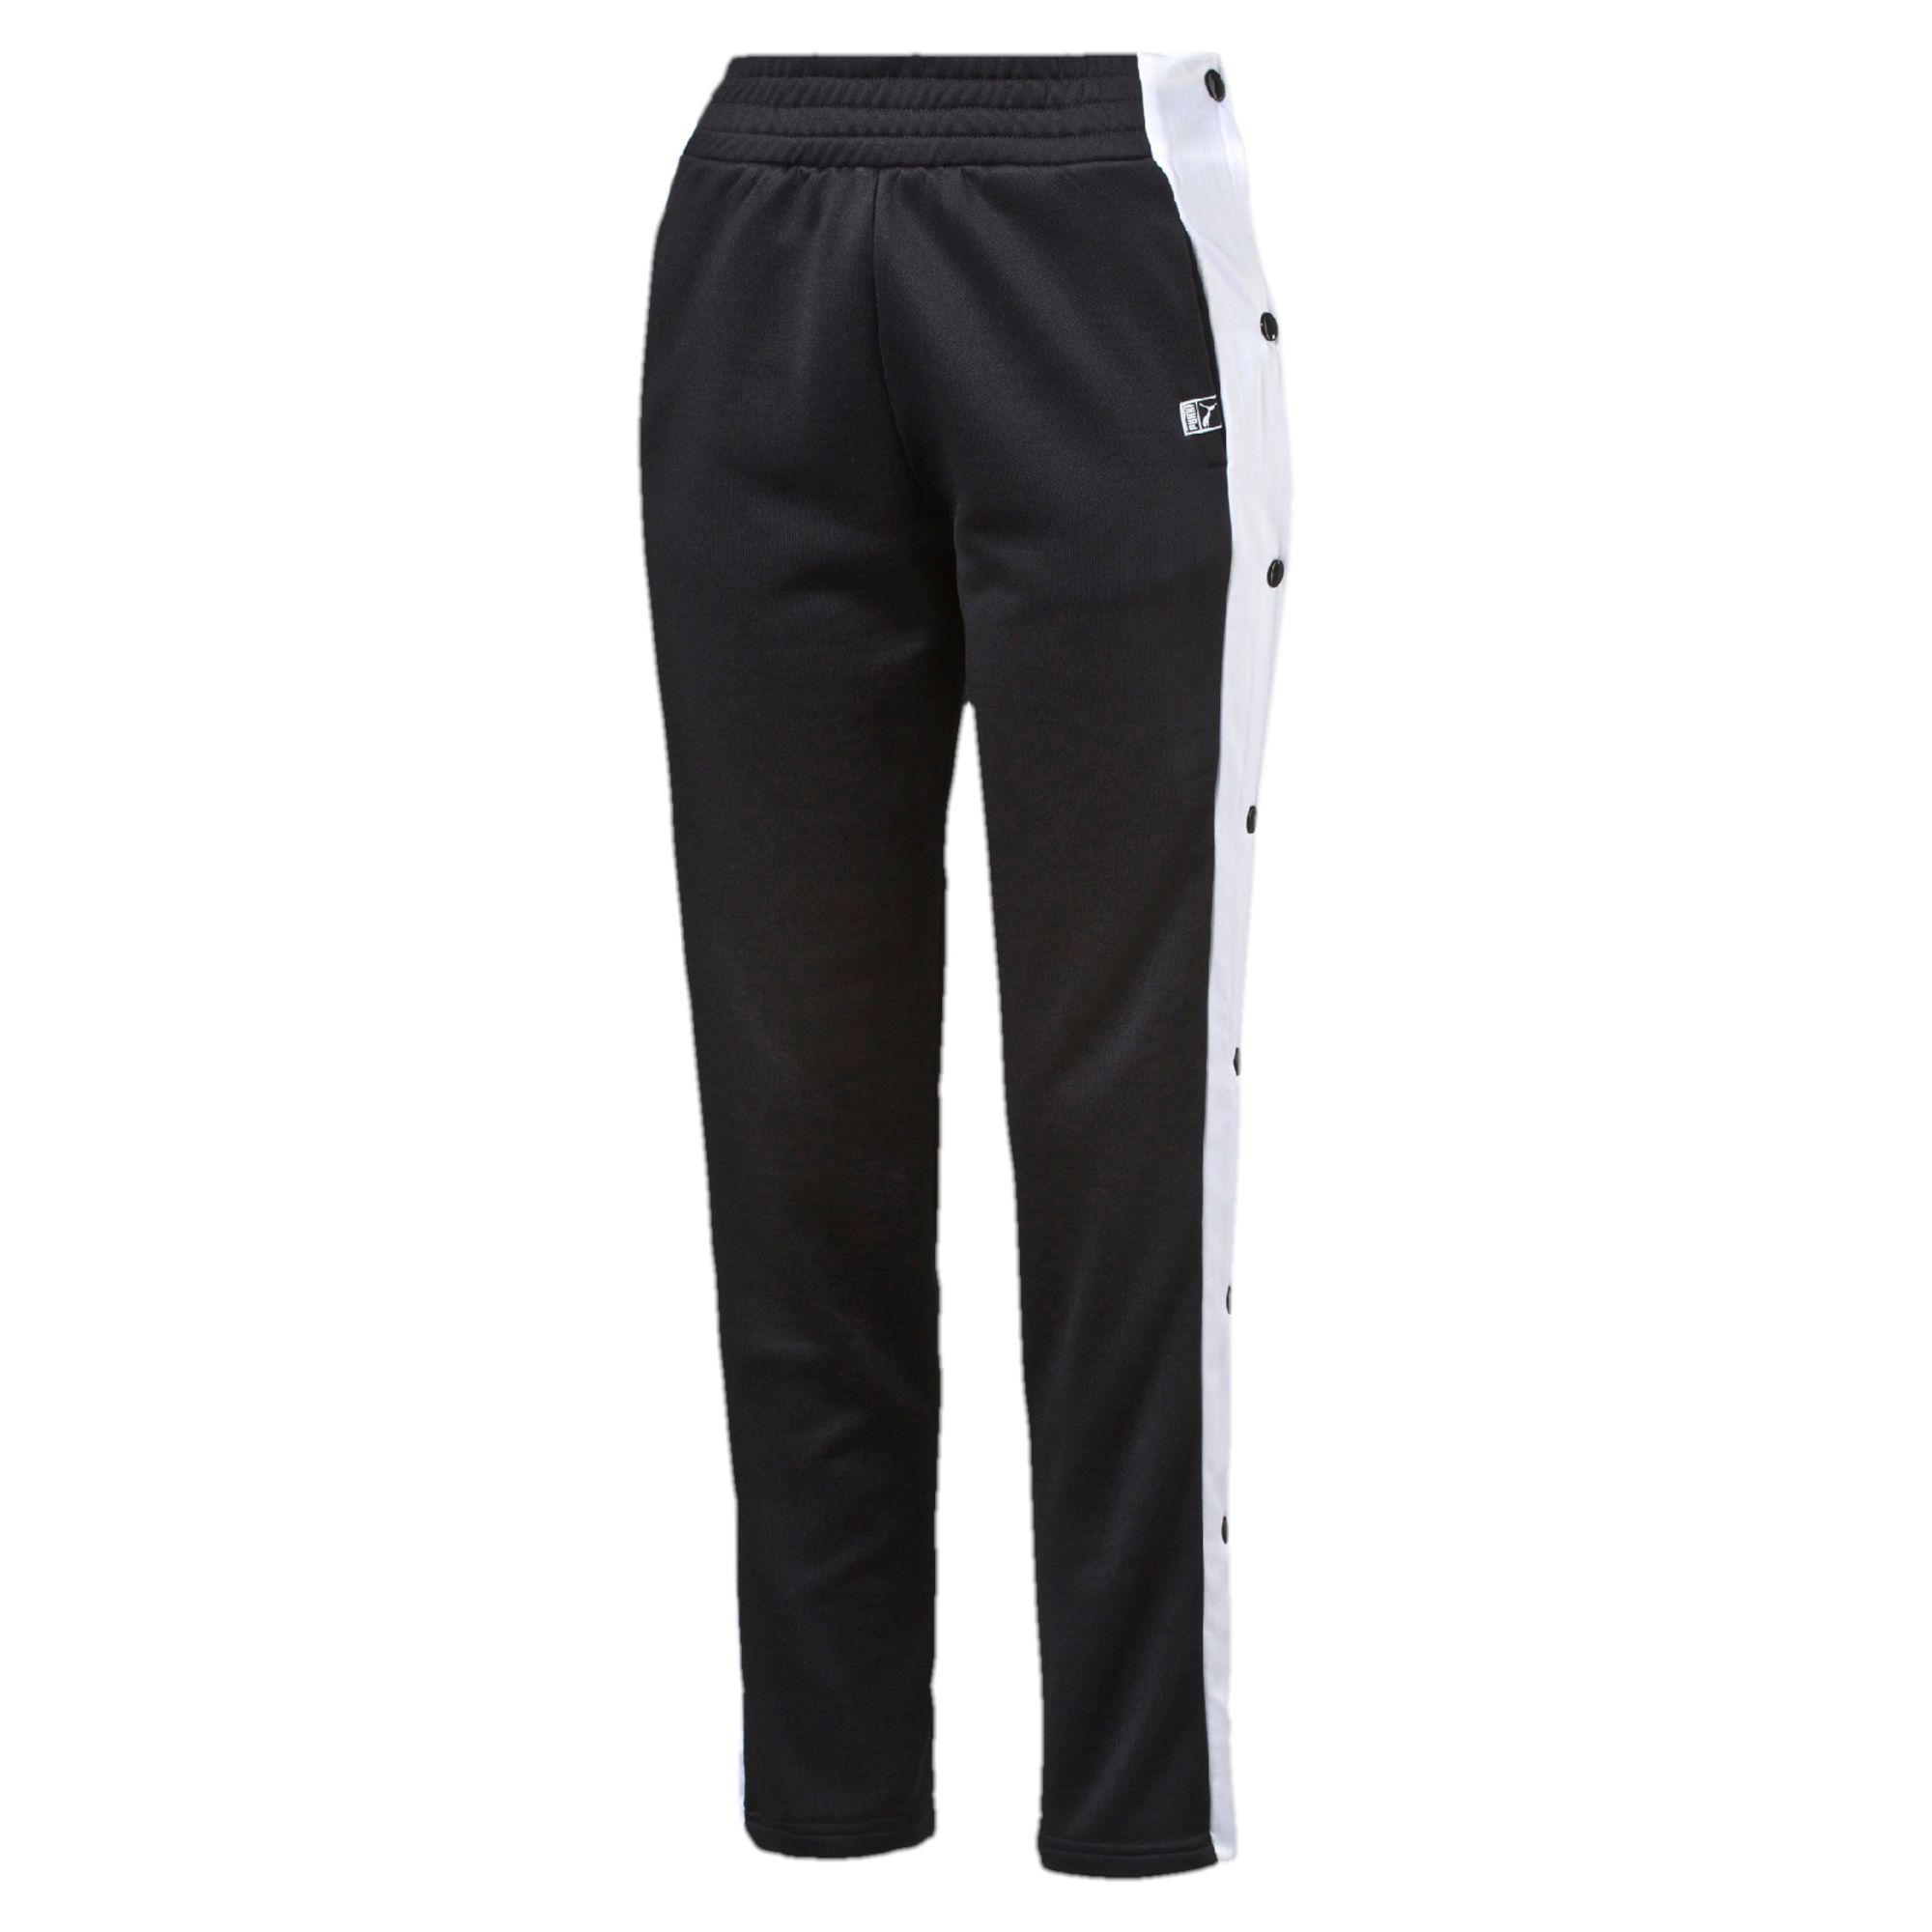 T7 Pop Up Pants Puma Black